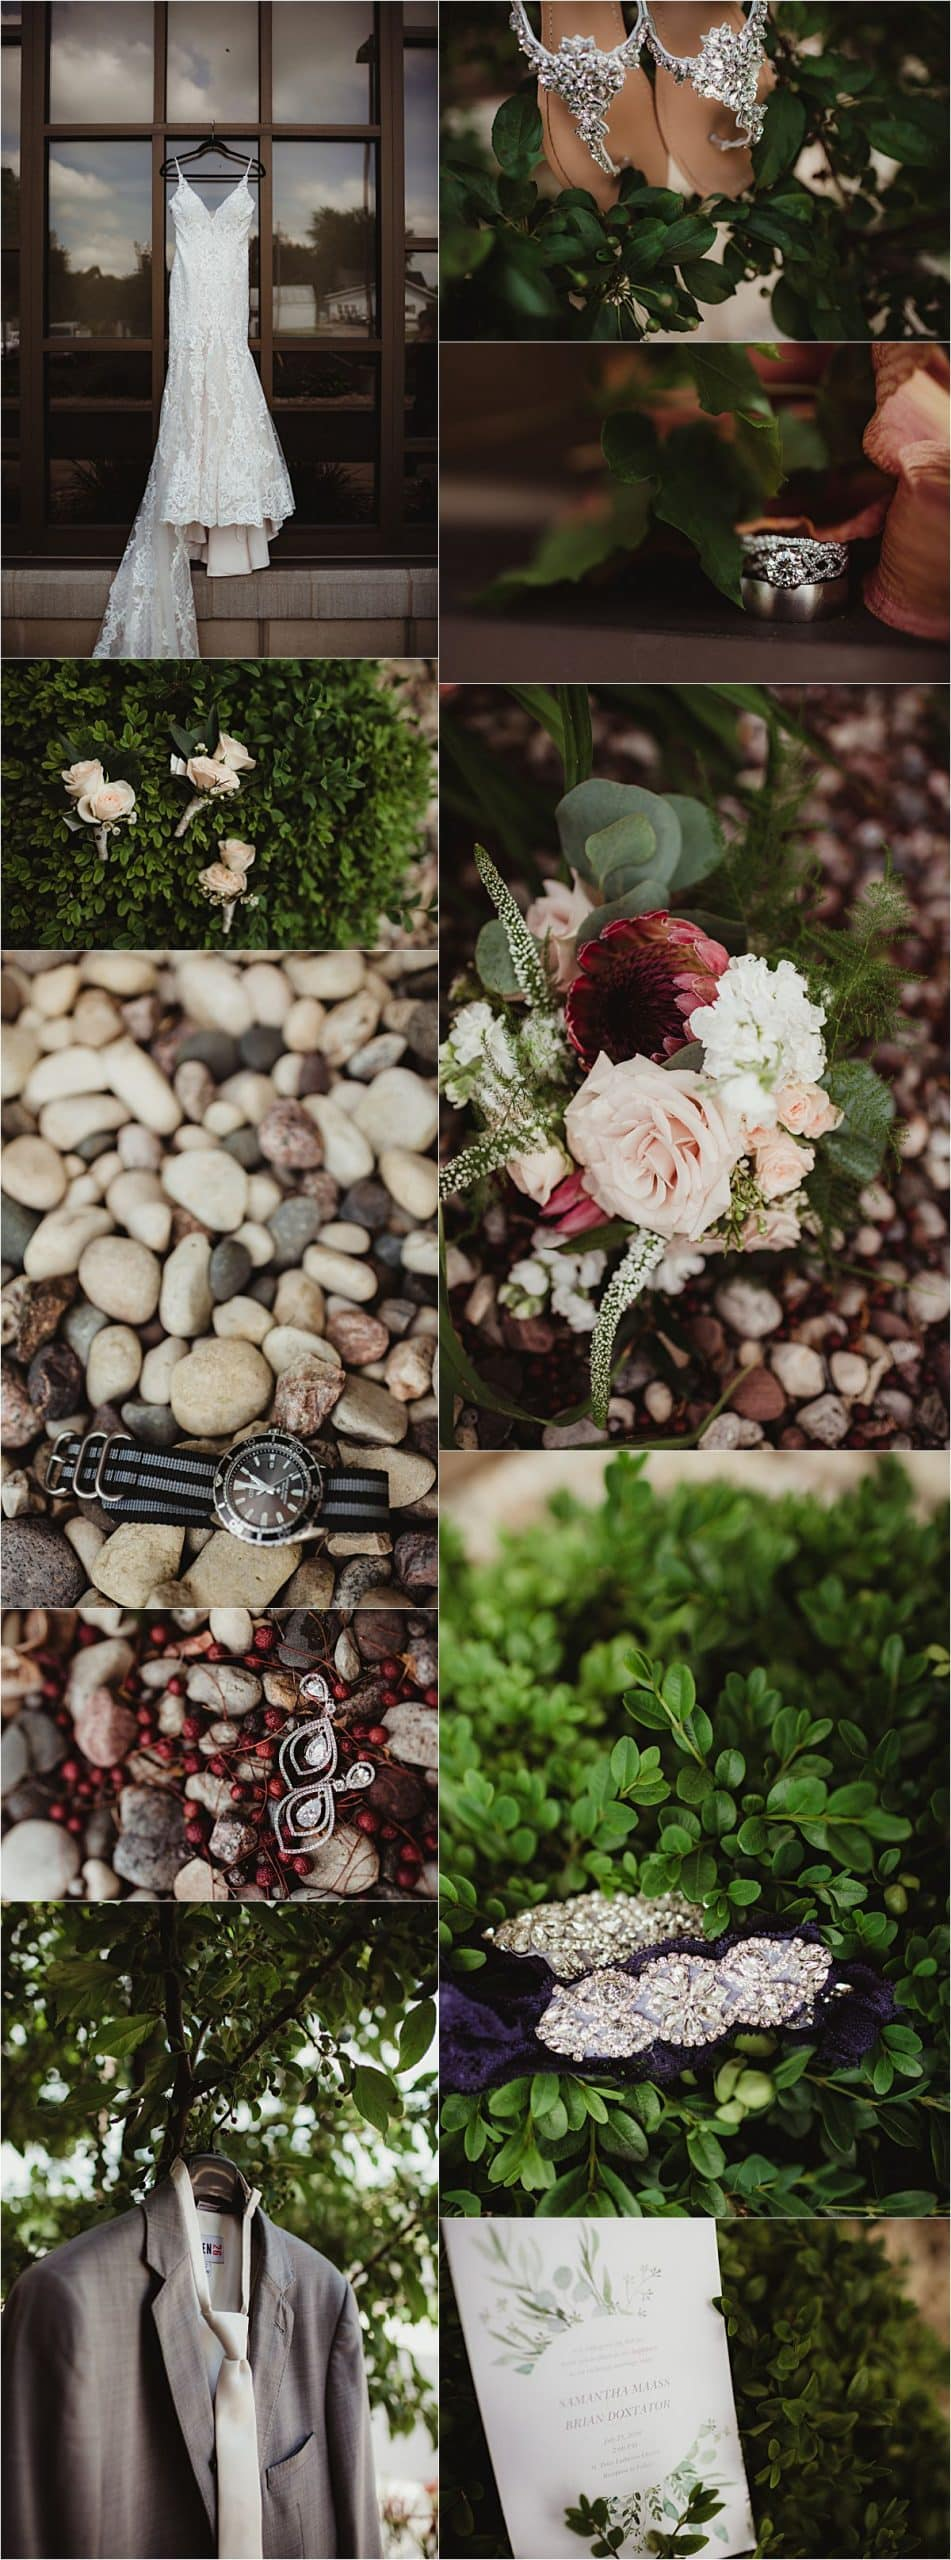 Blush and Ivory Summer Wedding Getting Ready Details